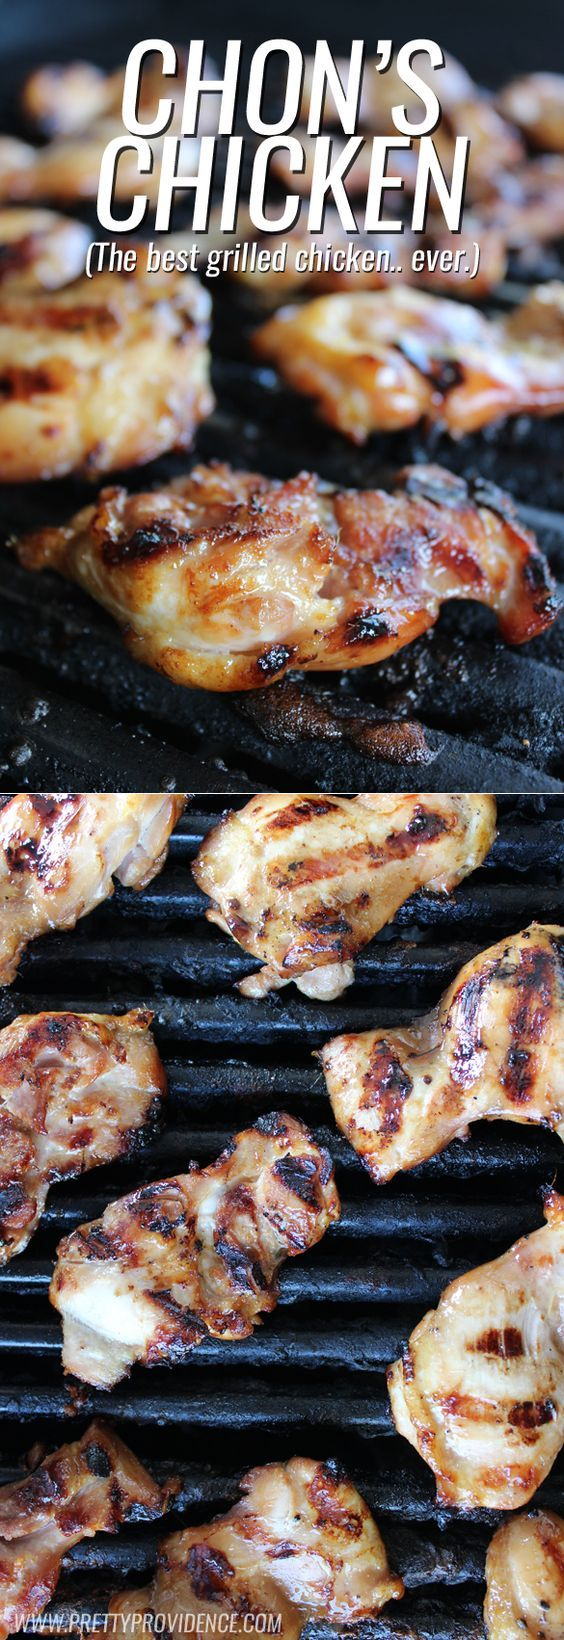 Literally the BEST grilled chicken marinade! I could make this once a week and my husband would be stoked! (Works in the crock-pot or oven too!):